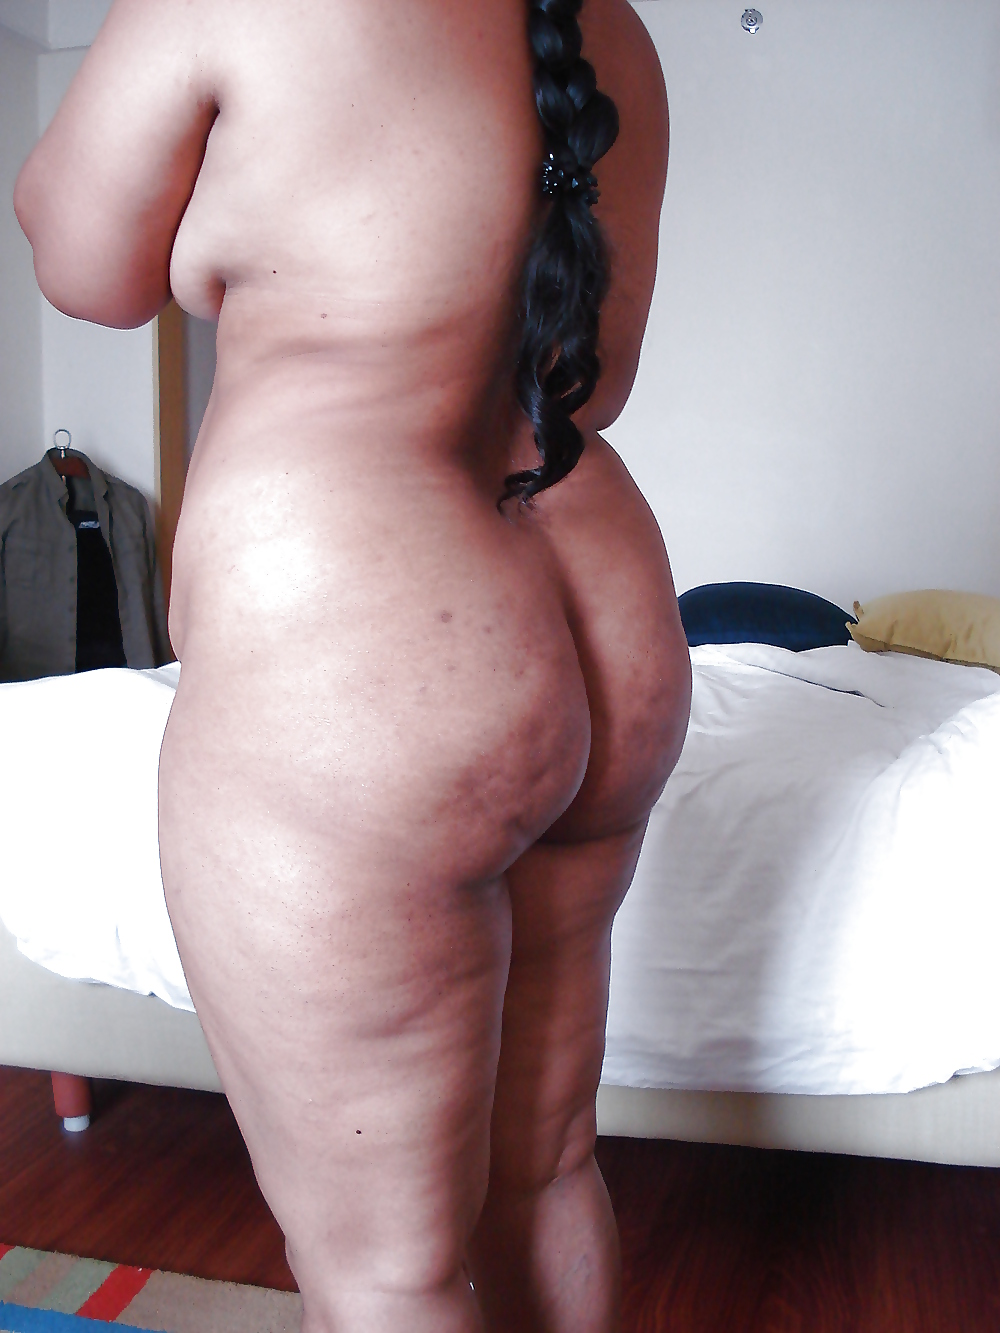 Naked indian girl with fat ass, naked anal milf